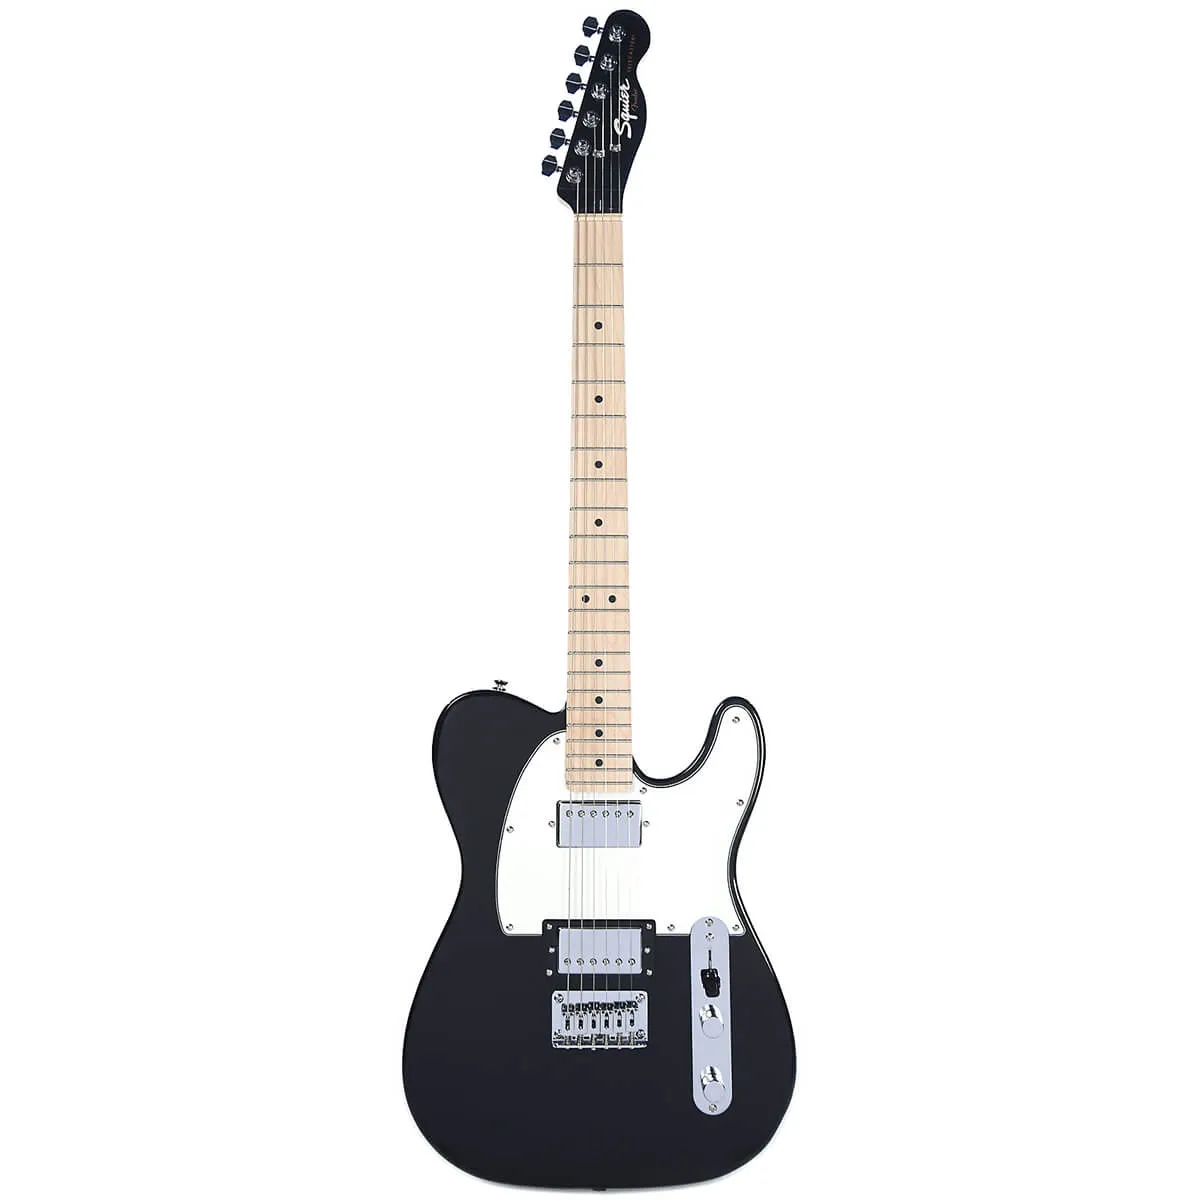 Guitarra Fender Squier Contemporary Telecaster Black Metallic